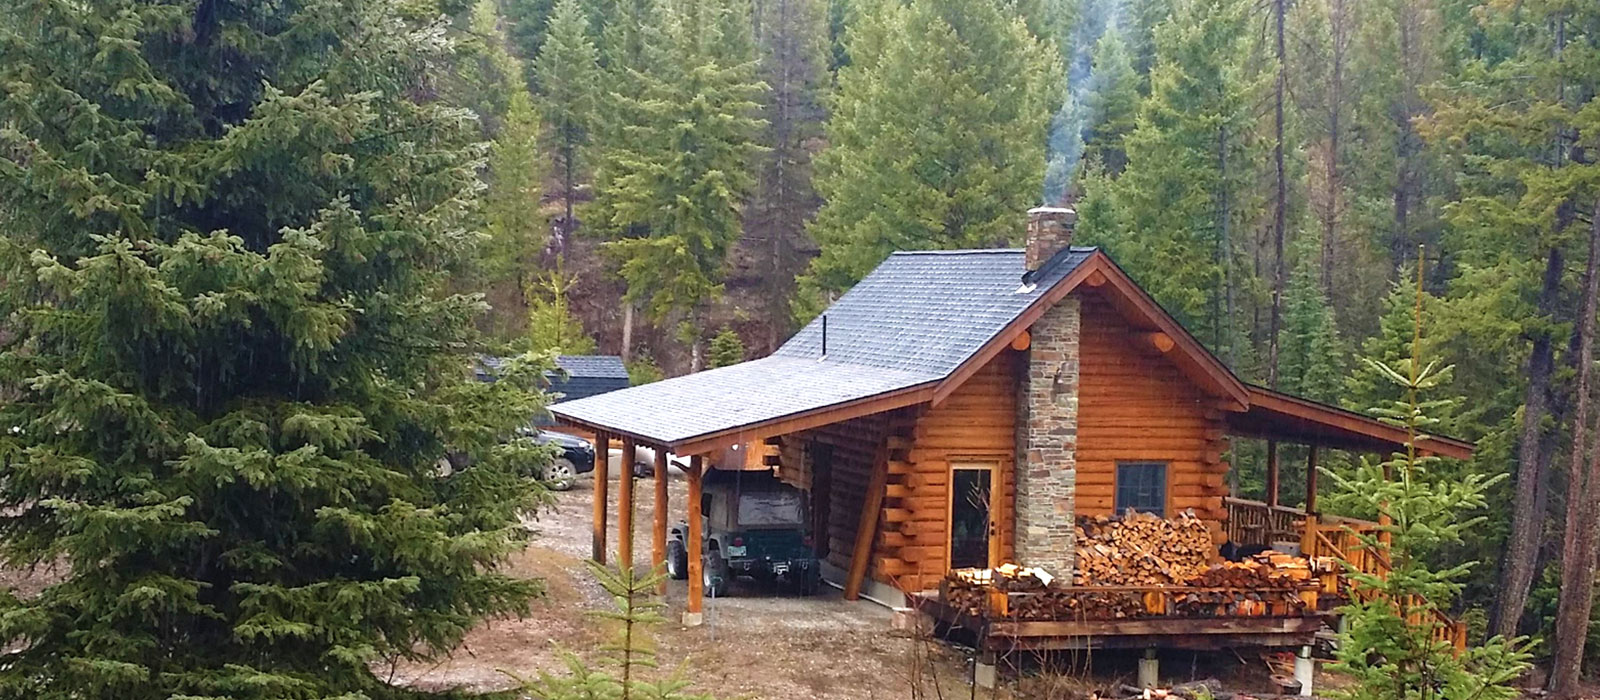 cabins mountain montana on in acres setting rentals stream s rent incredible srz cabin for front d canyon